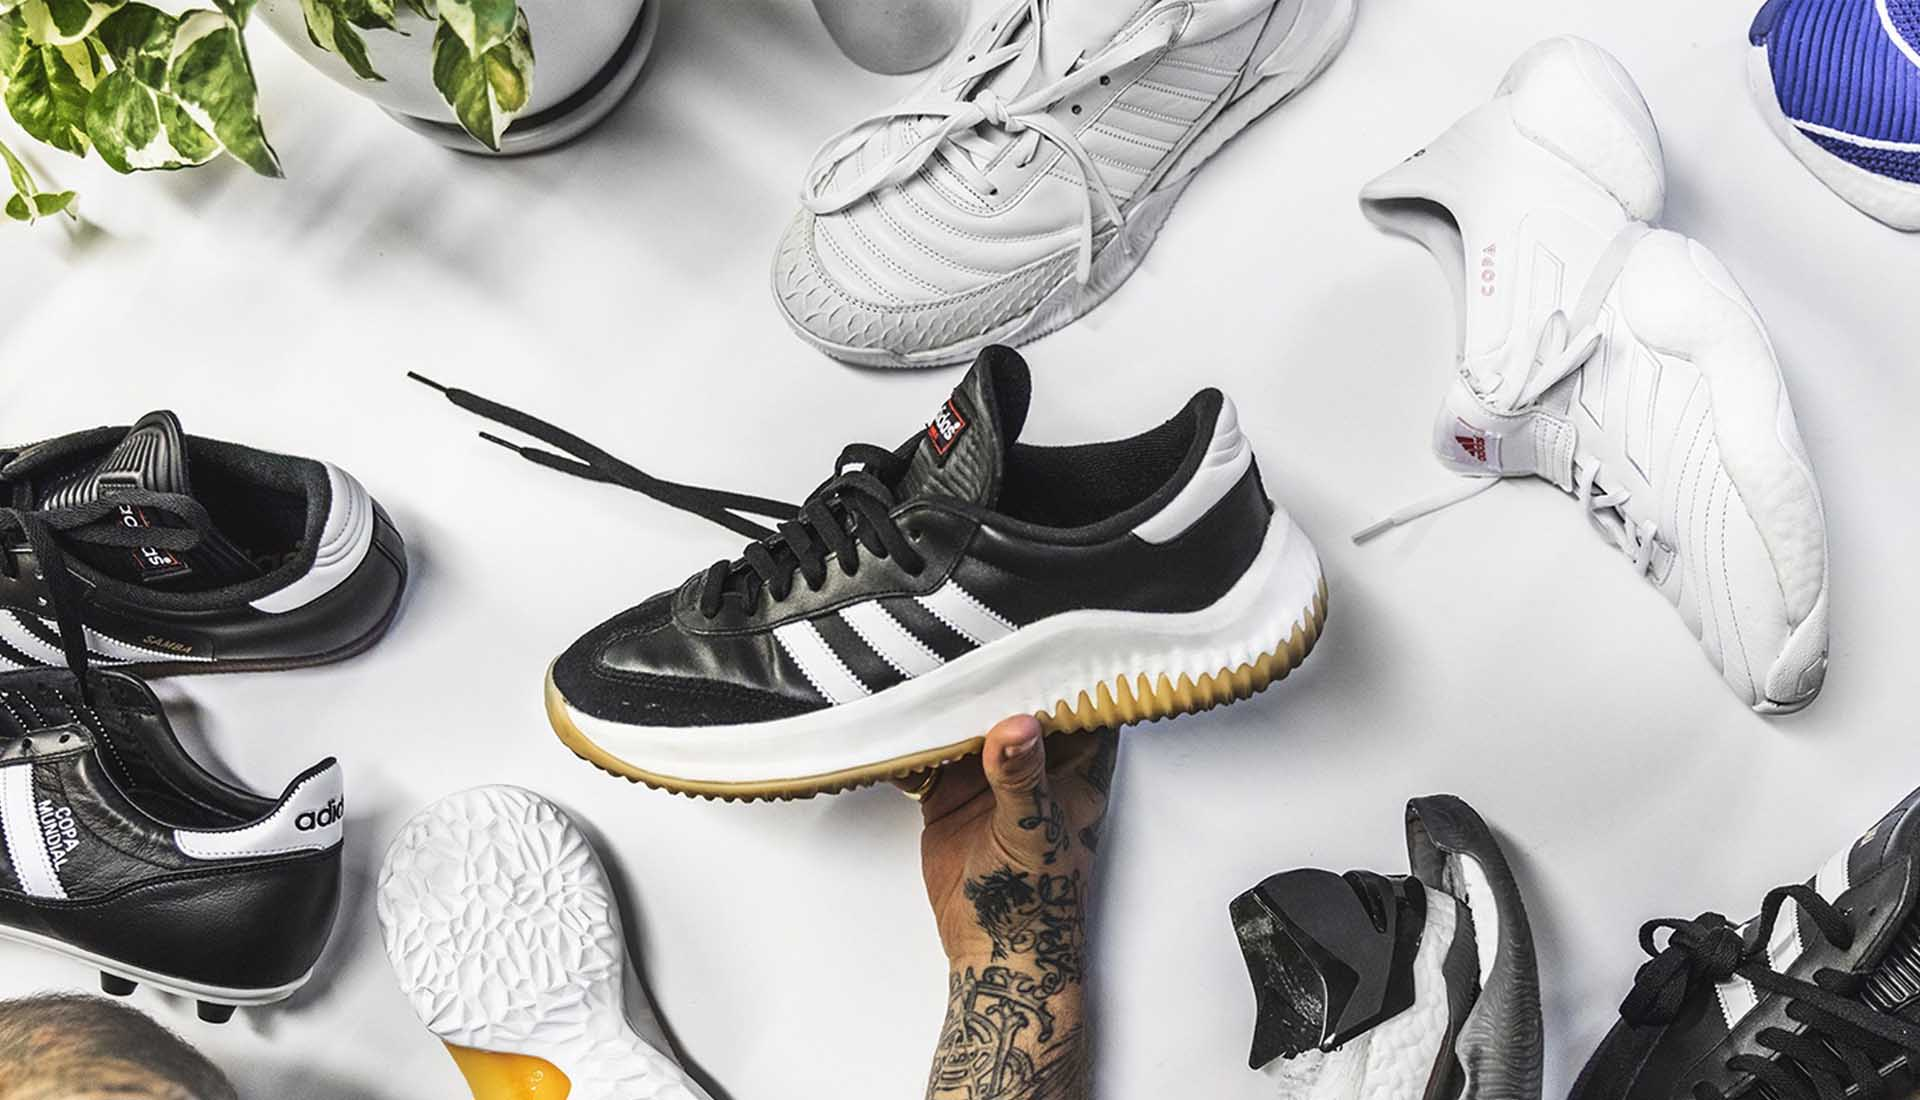 96f916abbcdc The Shoe Surgeon Creates Samba x Dame 4 Hybrid Sneaker - SoccerBible